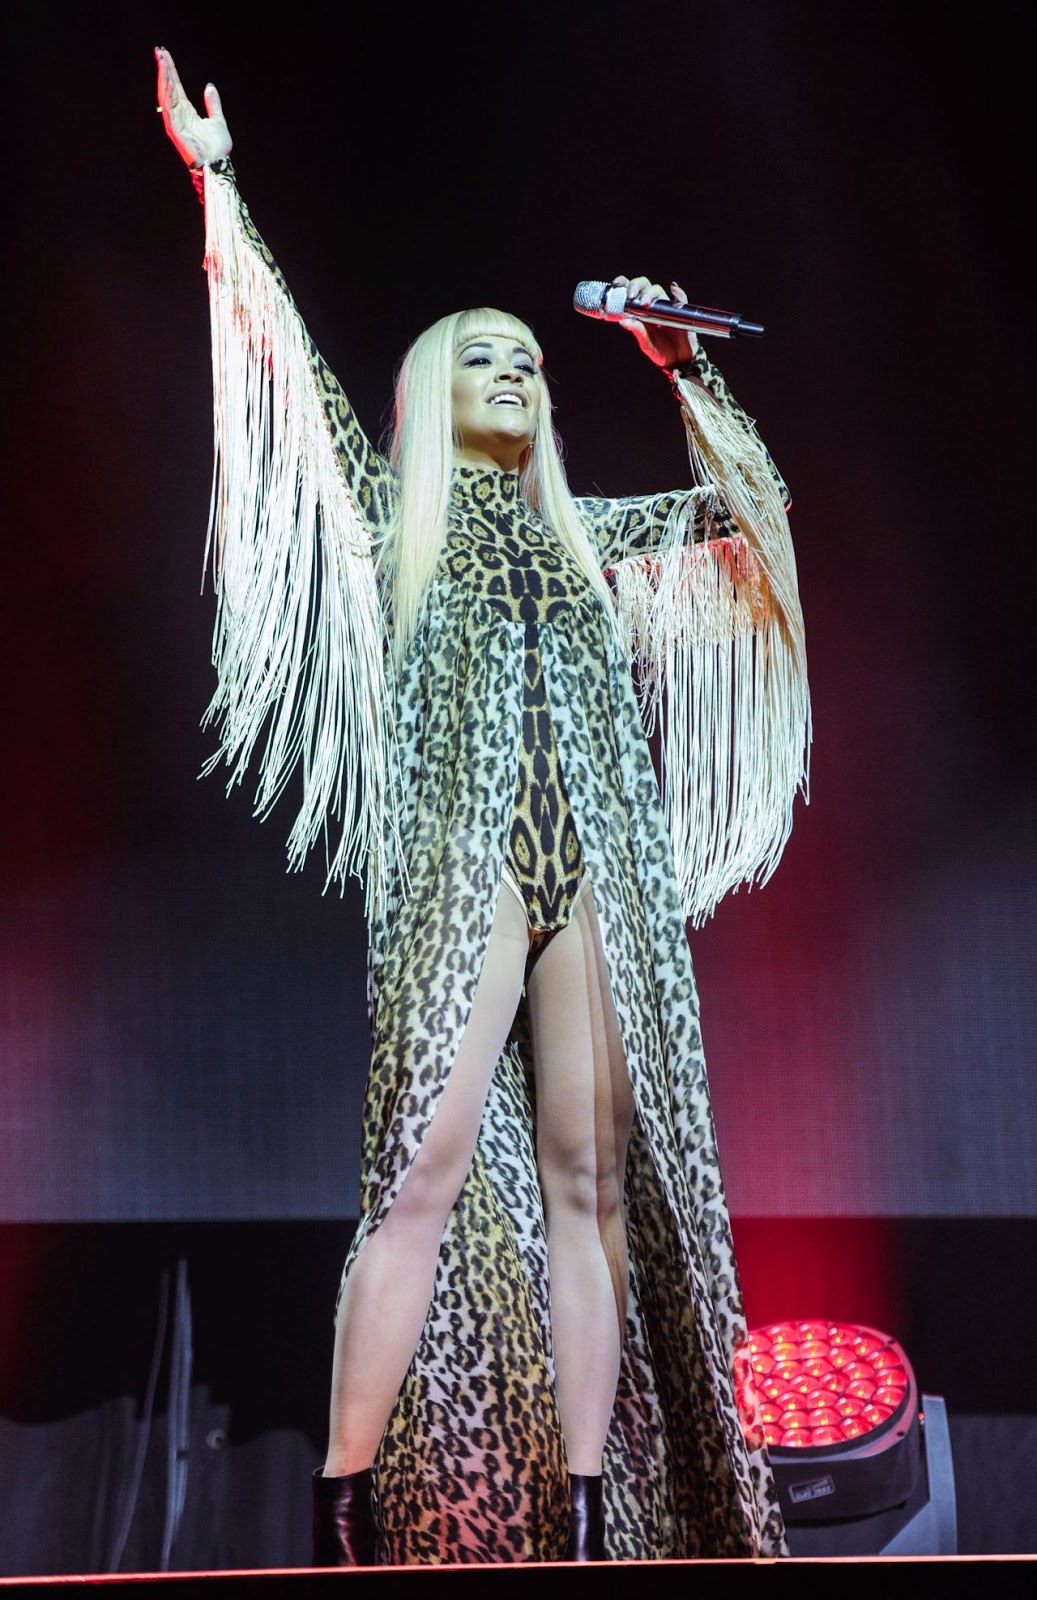 Rita Ora performs in a leopard print leotard at V Festival at Weston Park